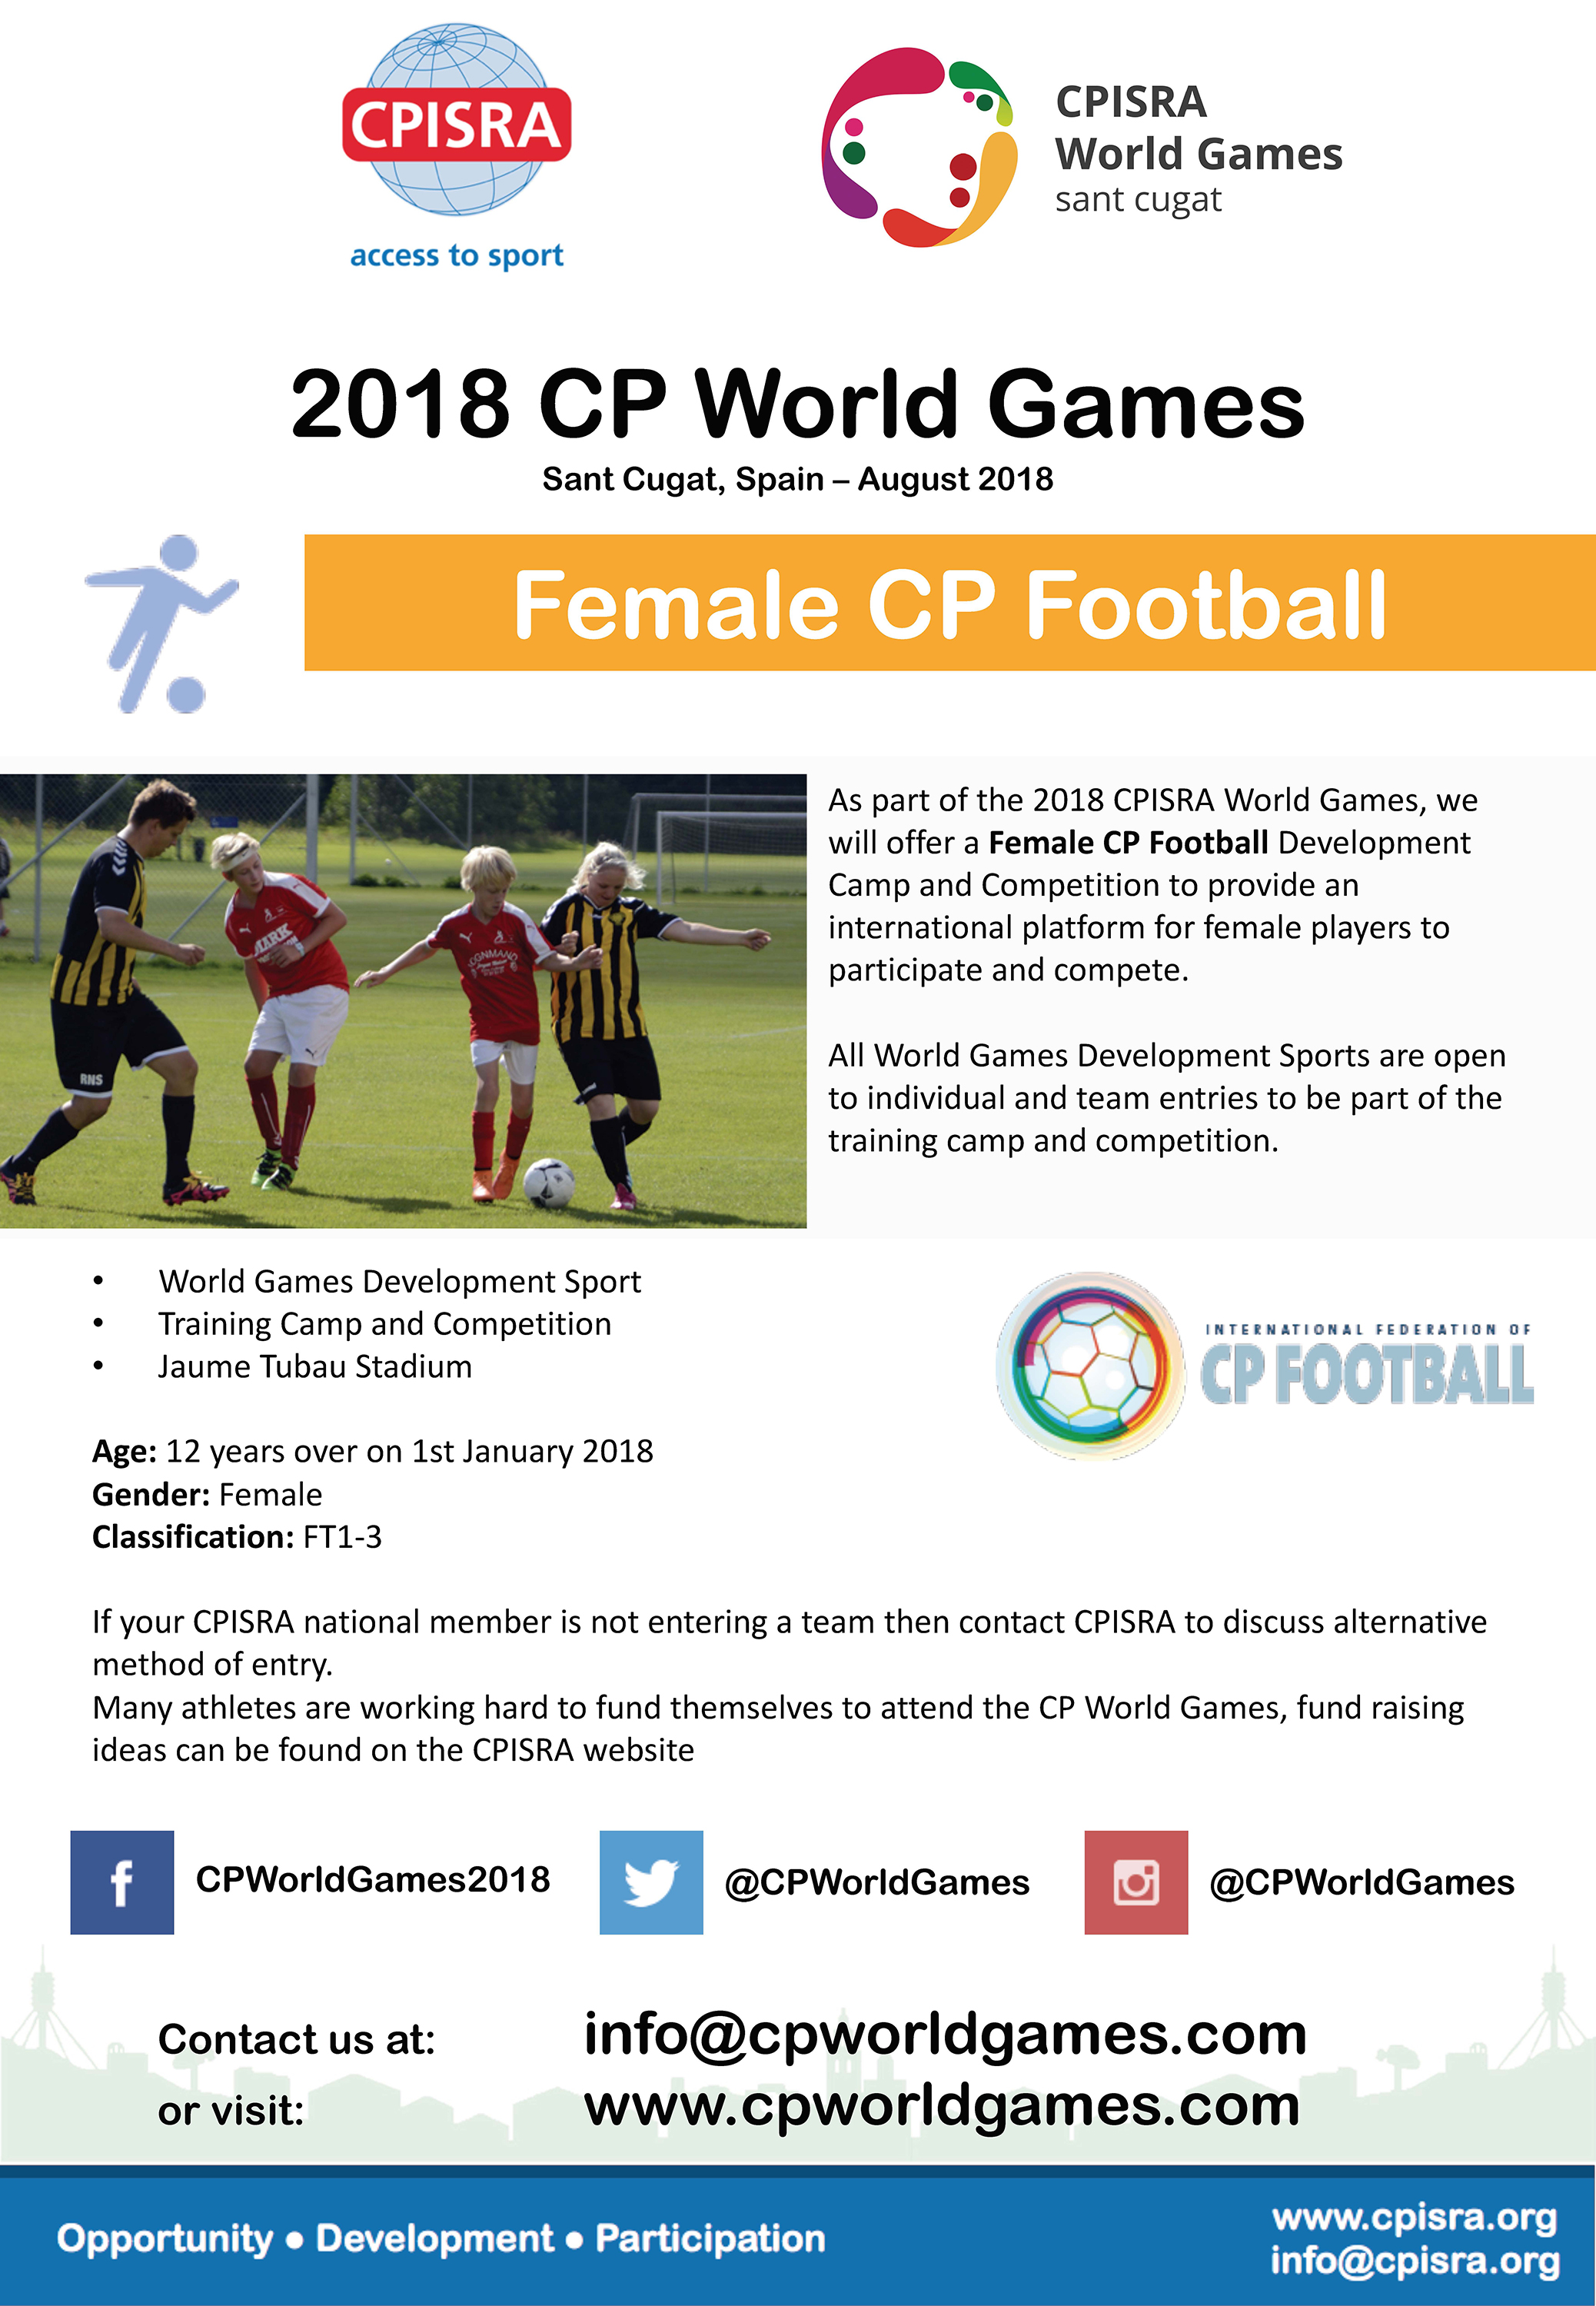 CPWG - Sports Flyers - Female CP Football (002)small.jpg